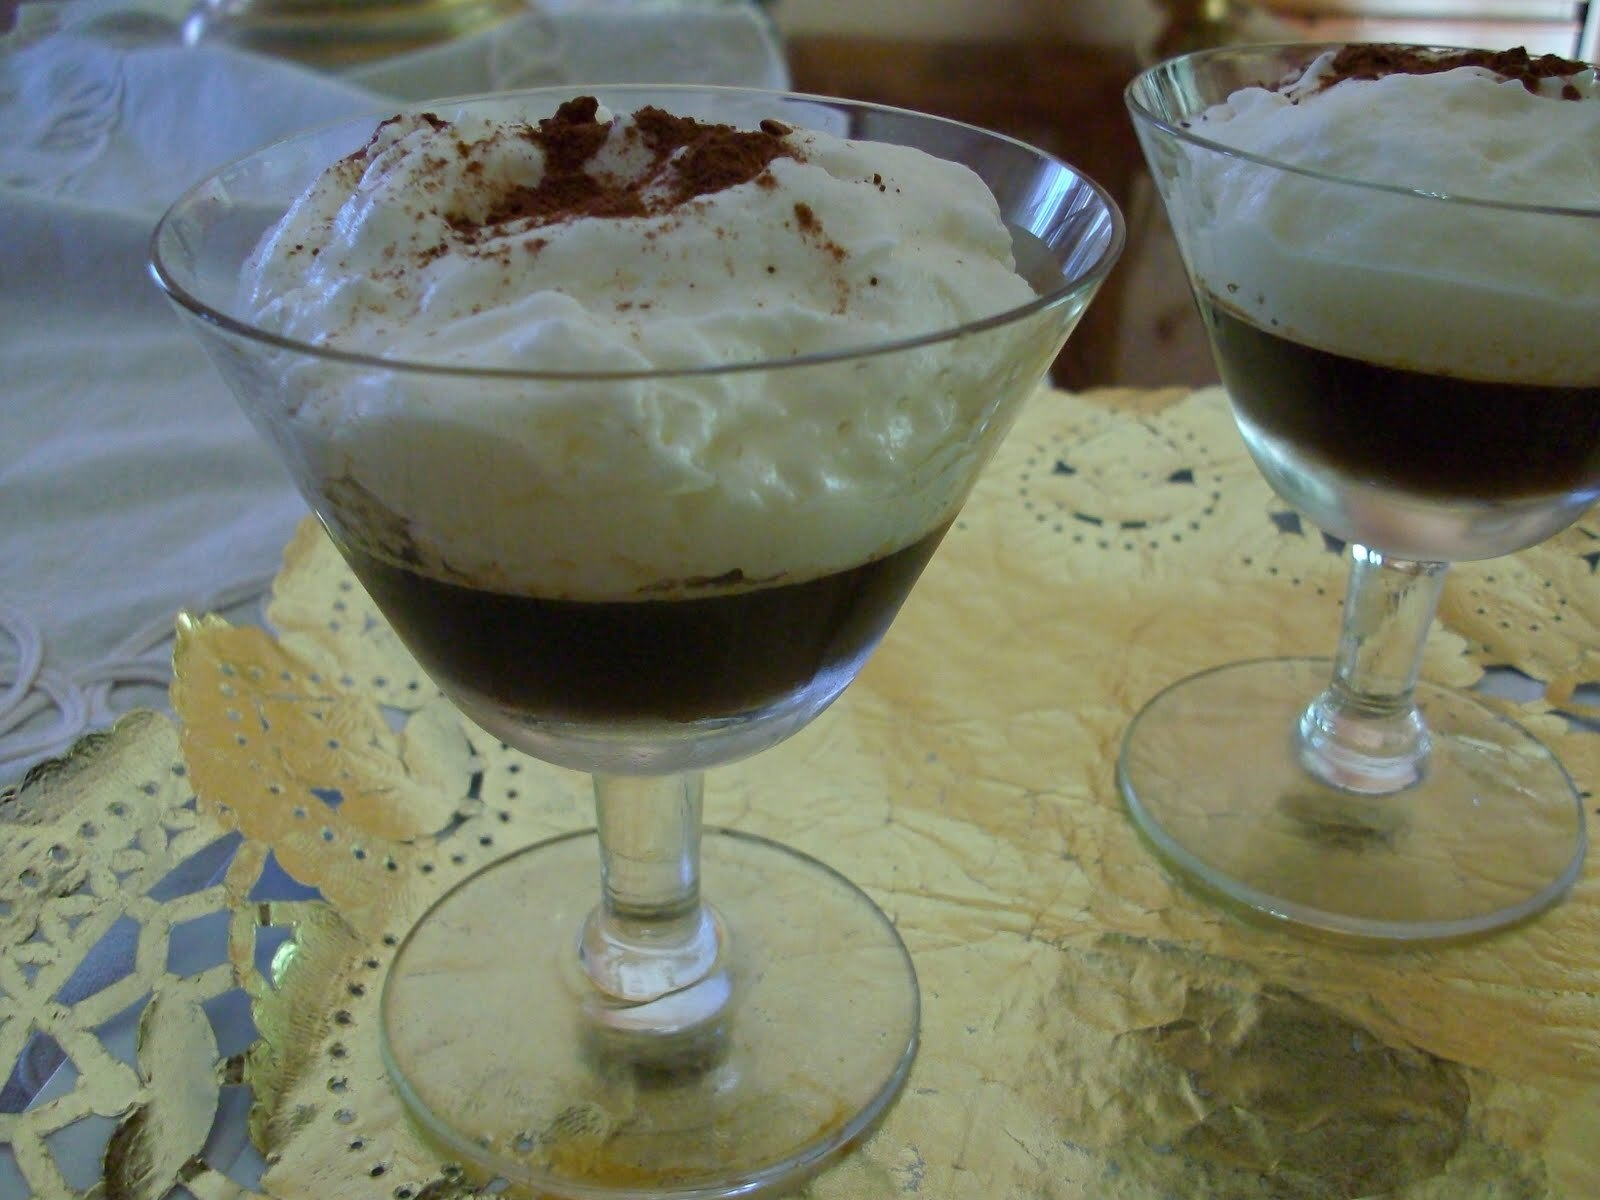 Crema de chocolate blanco y gelatina de cafe